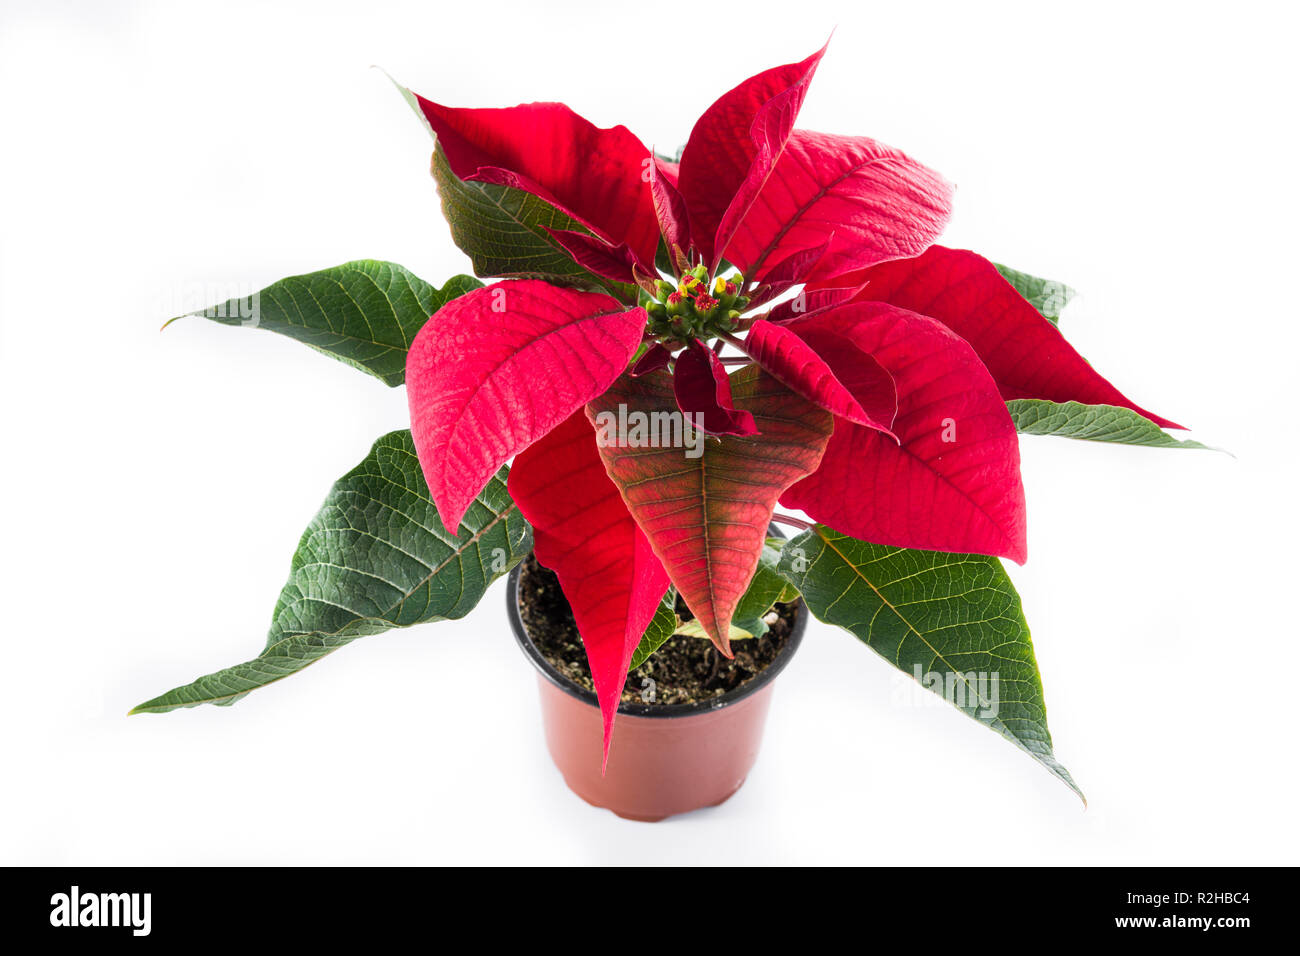 Christmas poinsettia flower isolated on white background. - Stock Image